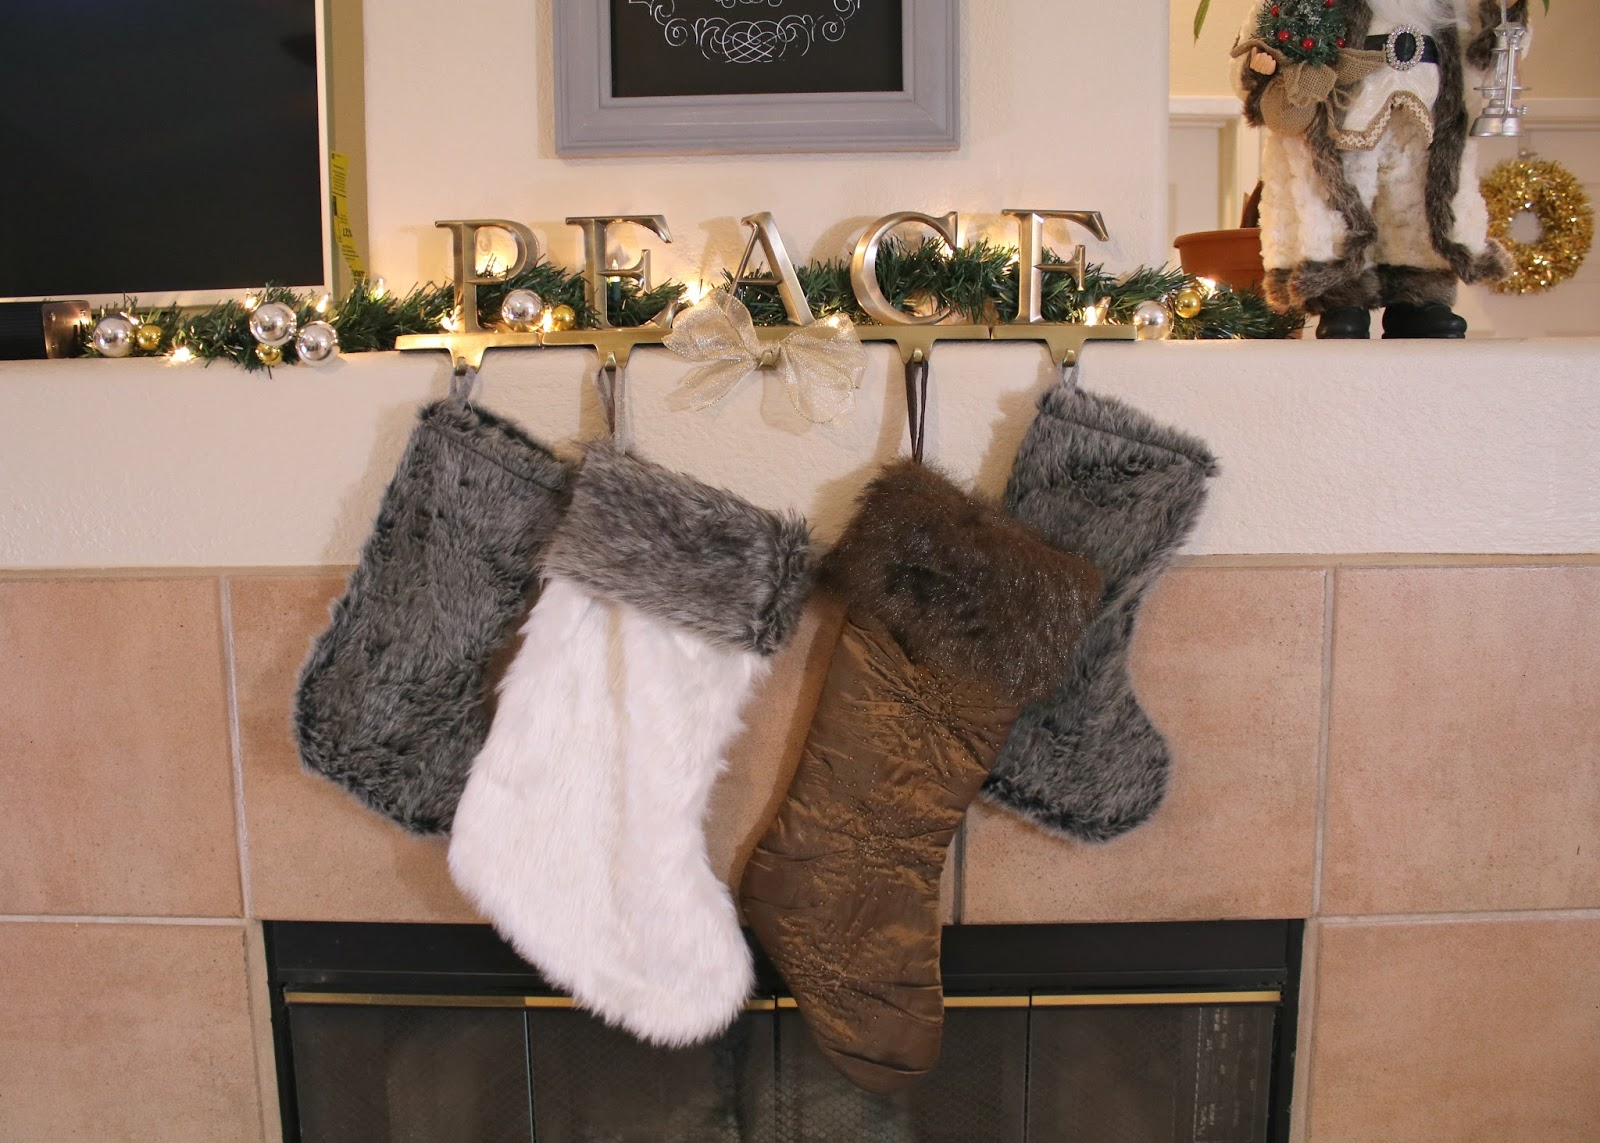 Faux Fur stockings, brown and white stockings, faux fur holiday theme